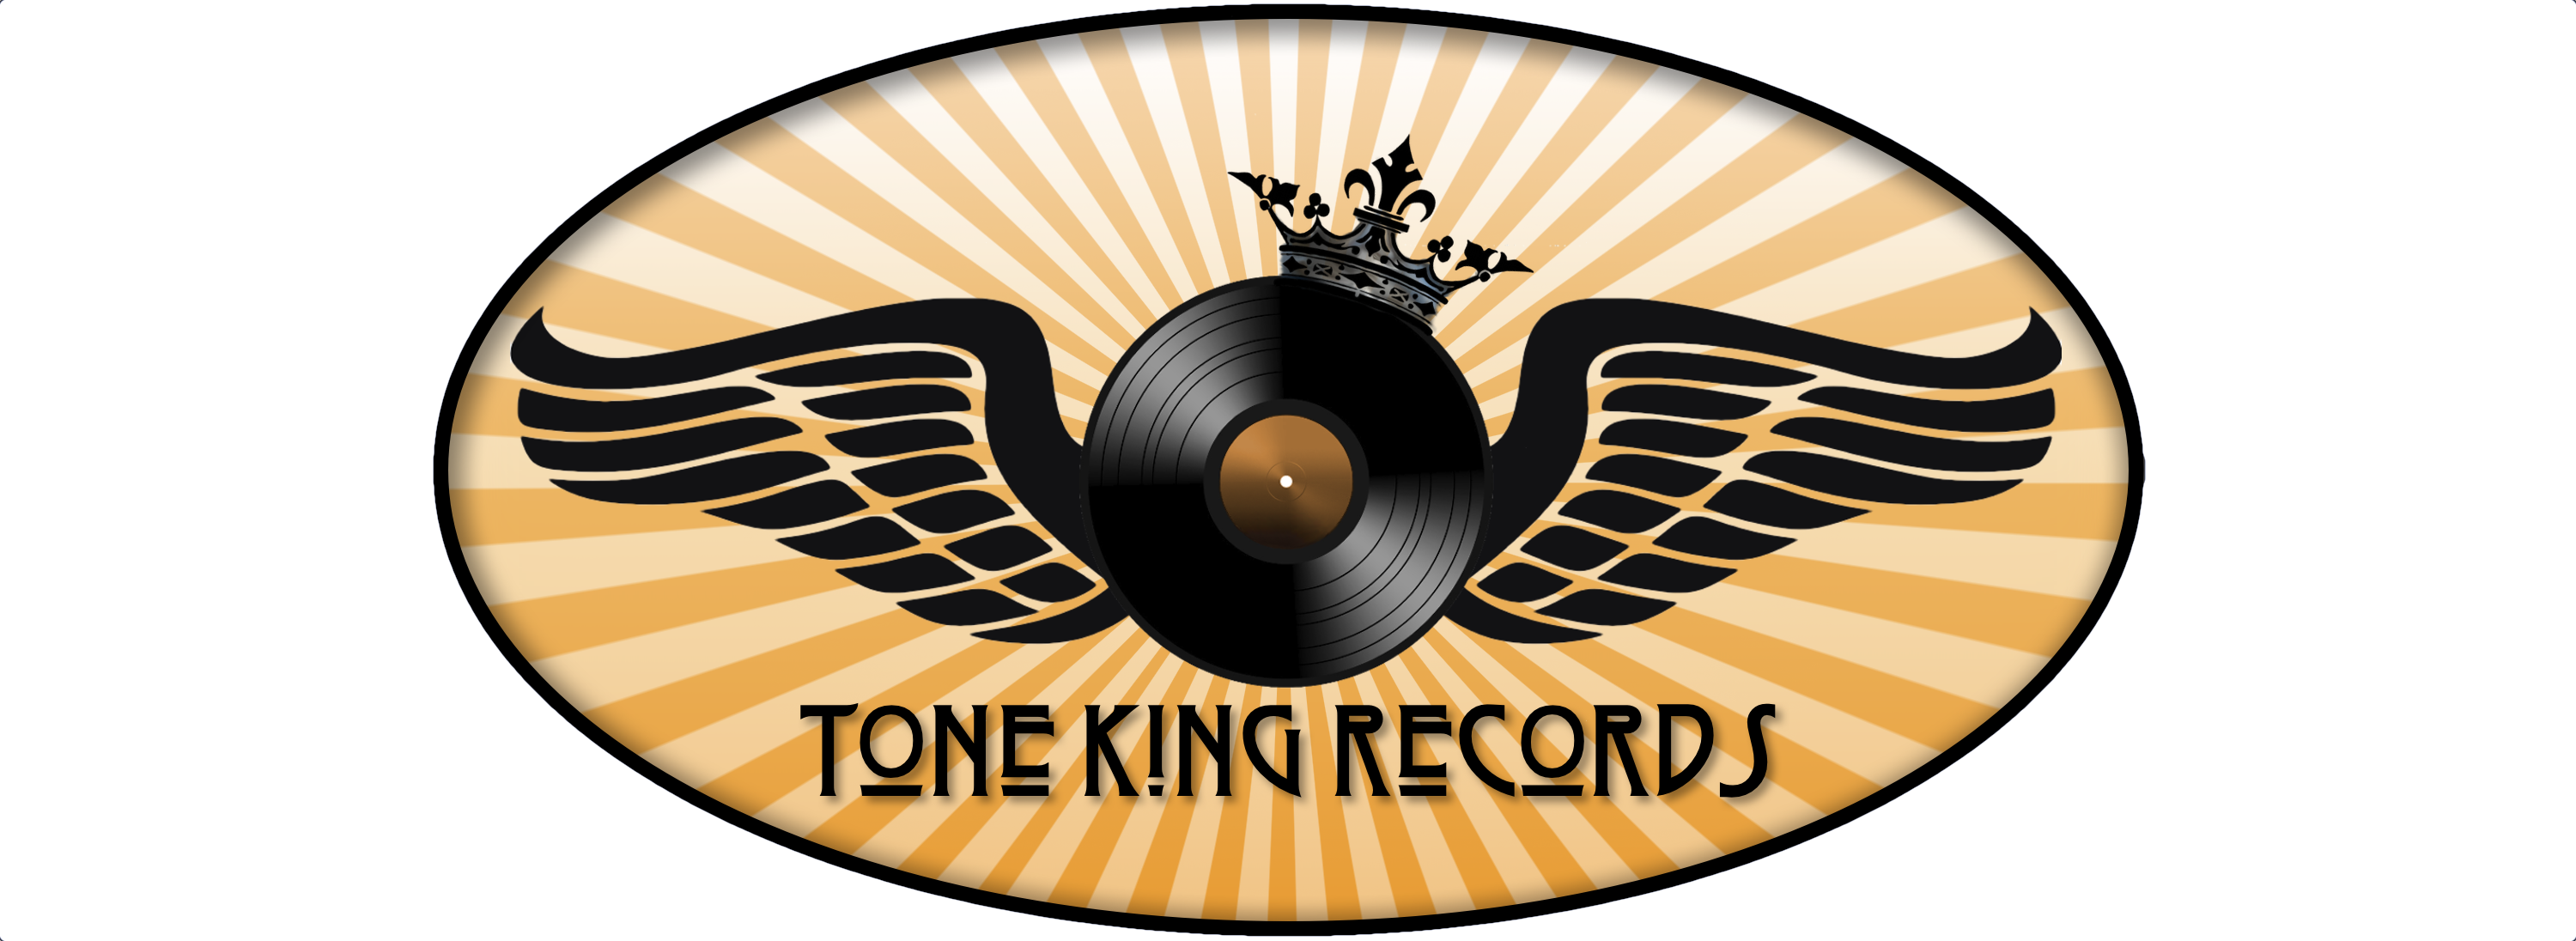 Tone King Records Logo